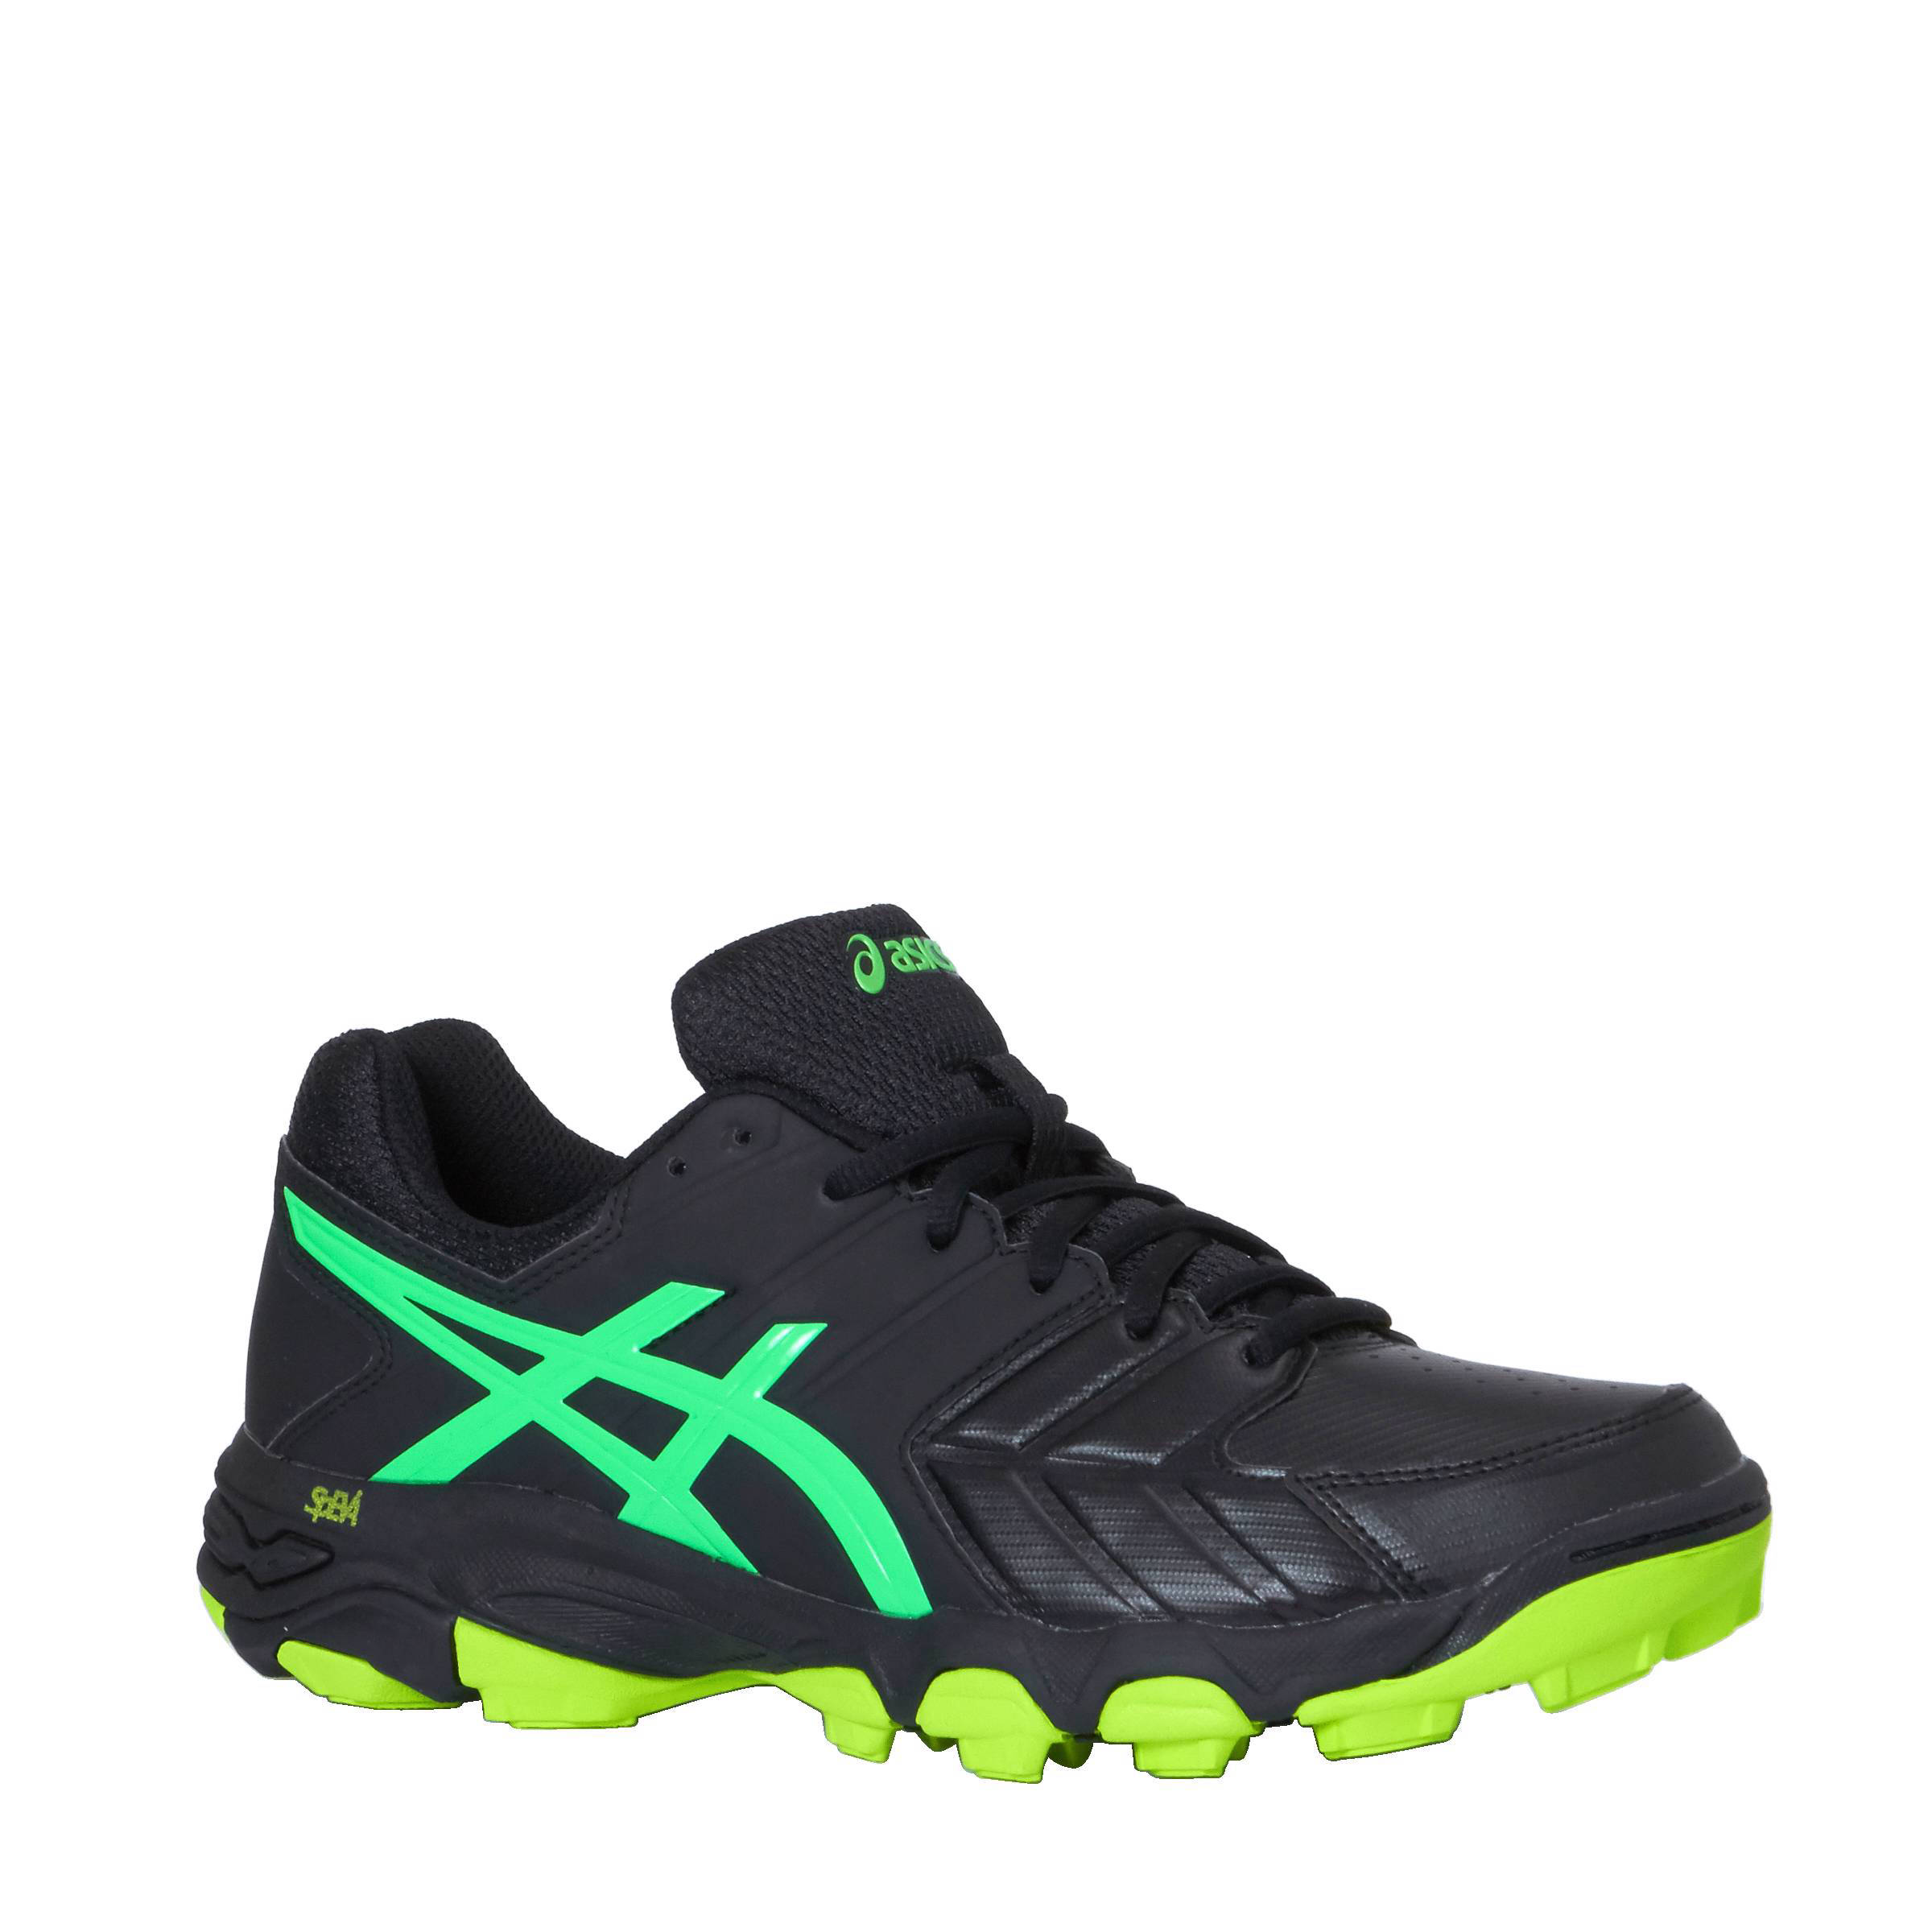 Gel Blackheath 6 hockeyschoenen